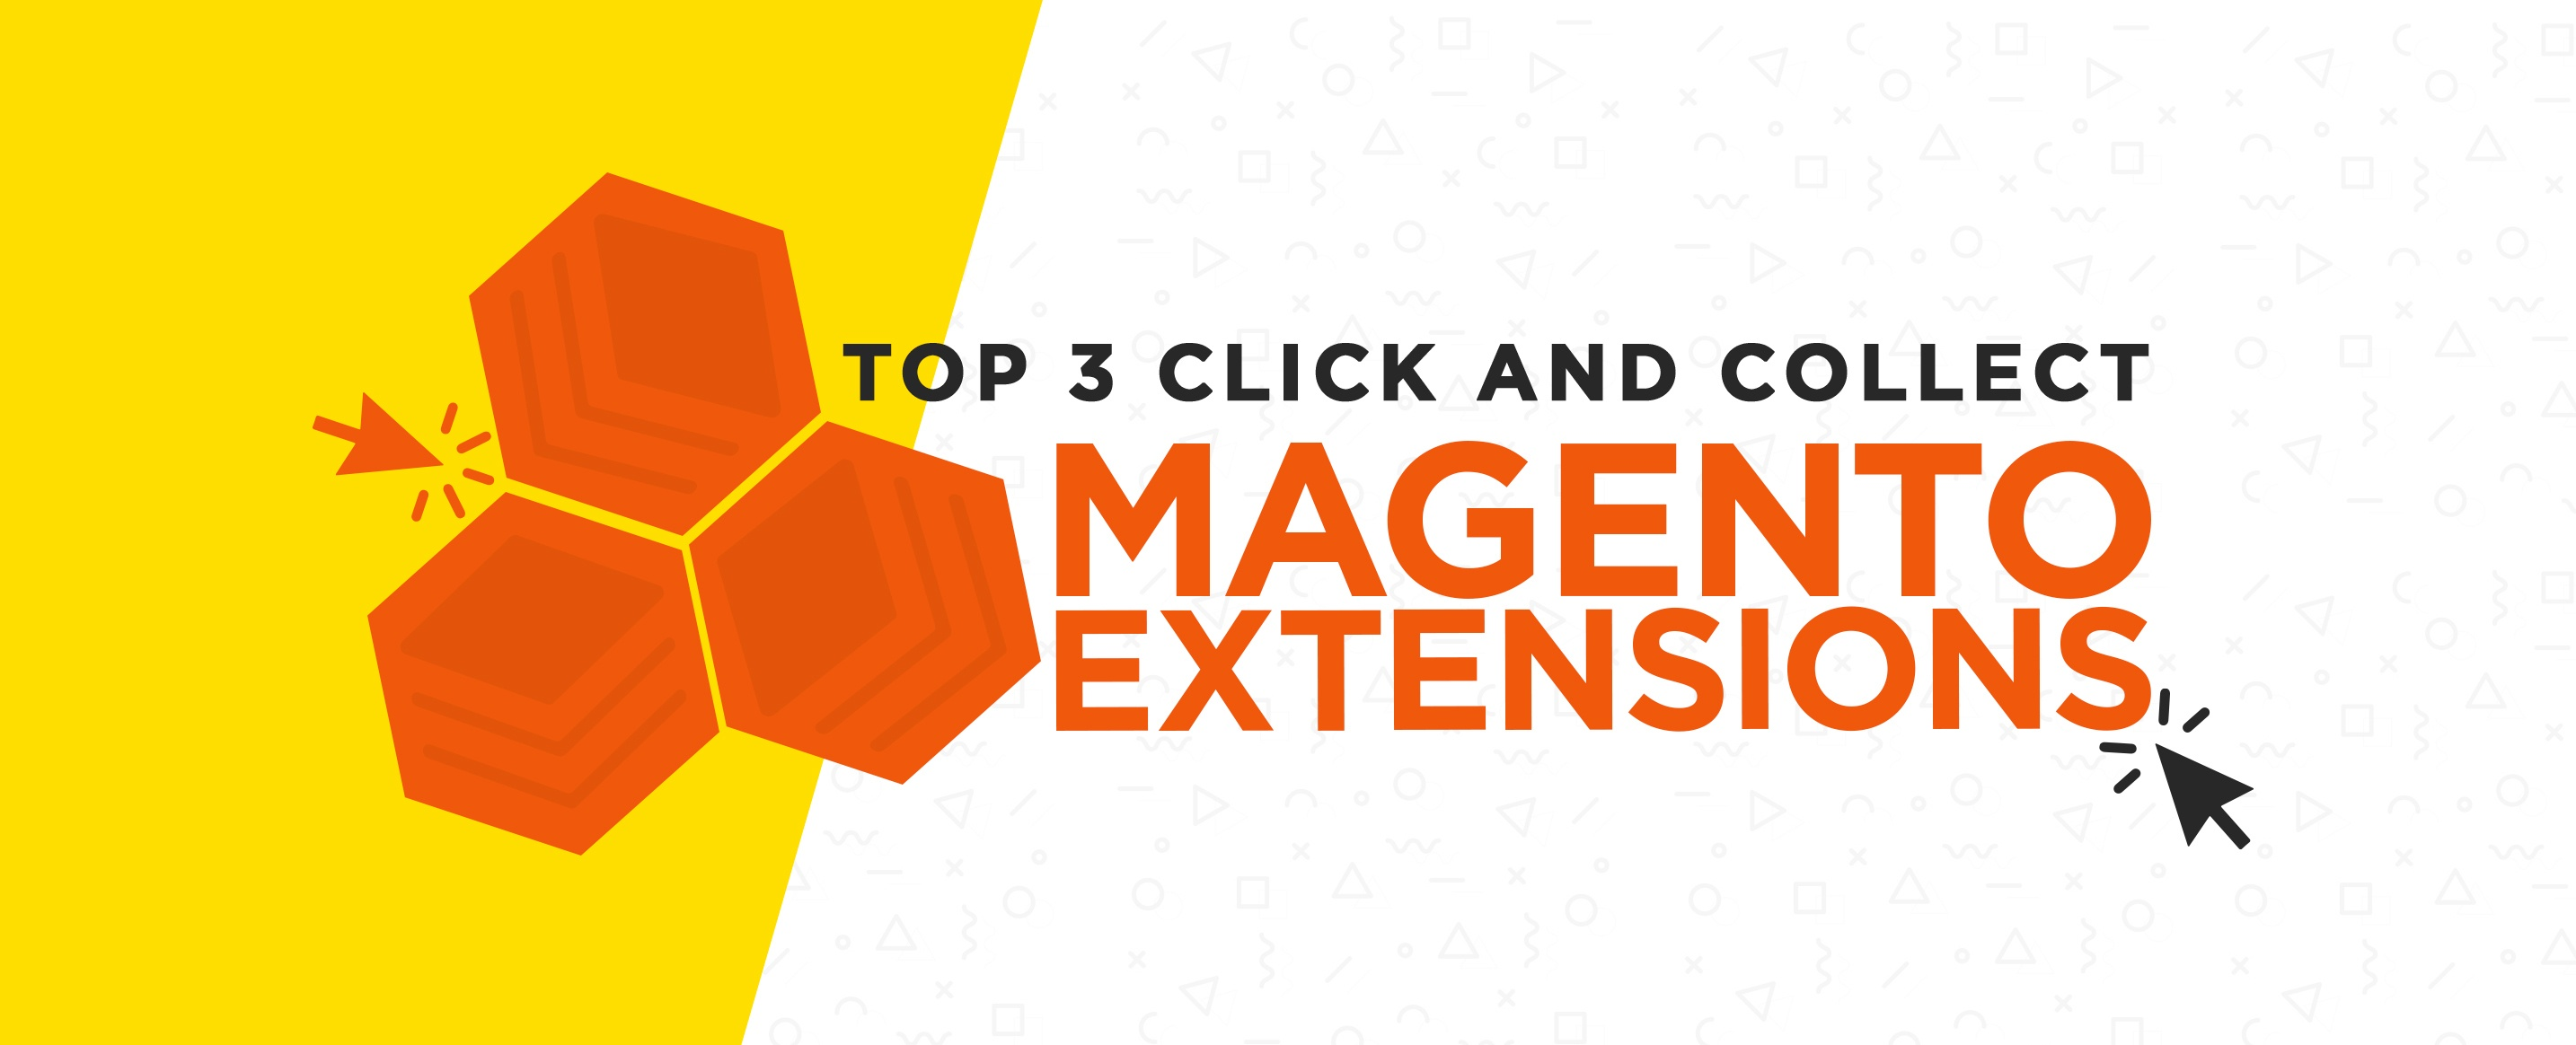 Top-3-Click-and-Collect-Magento-Extensions